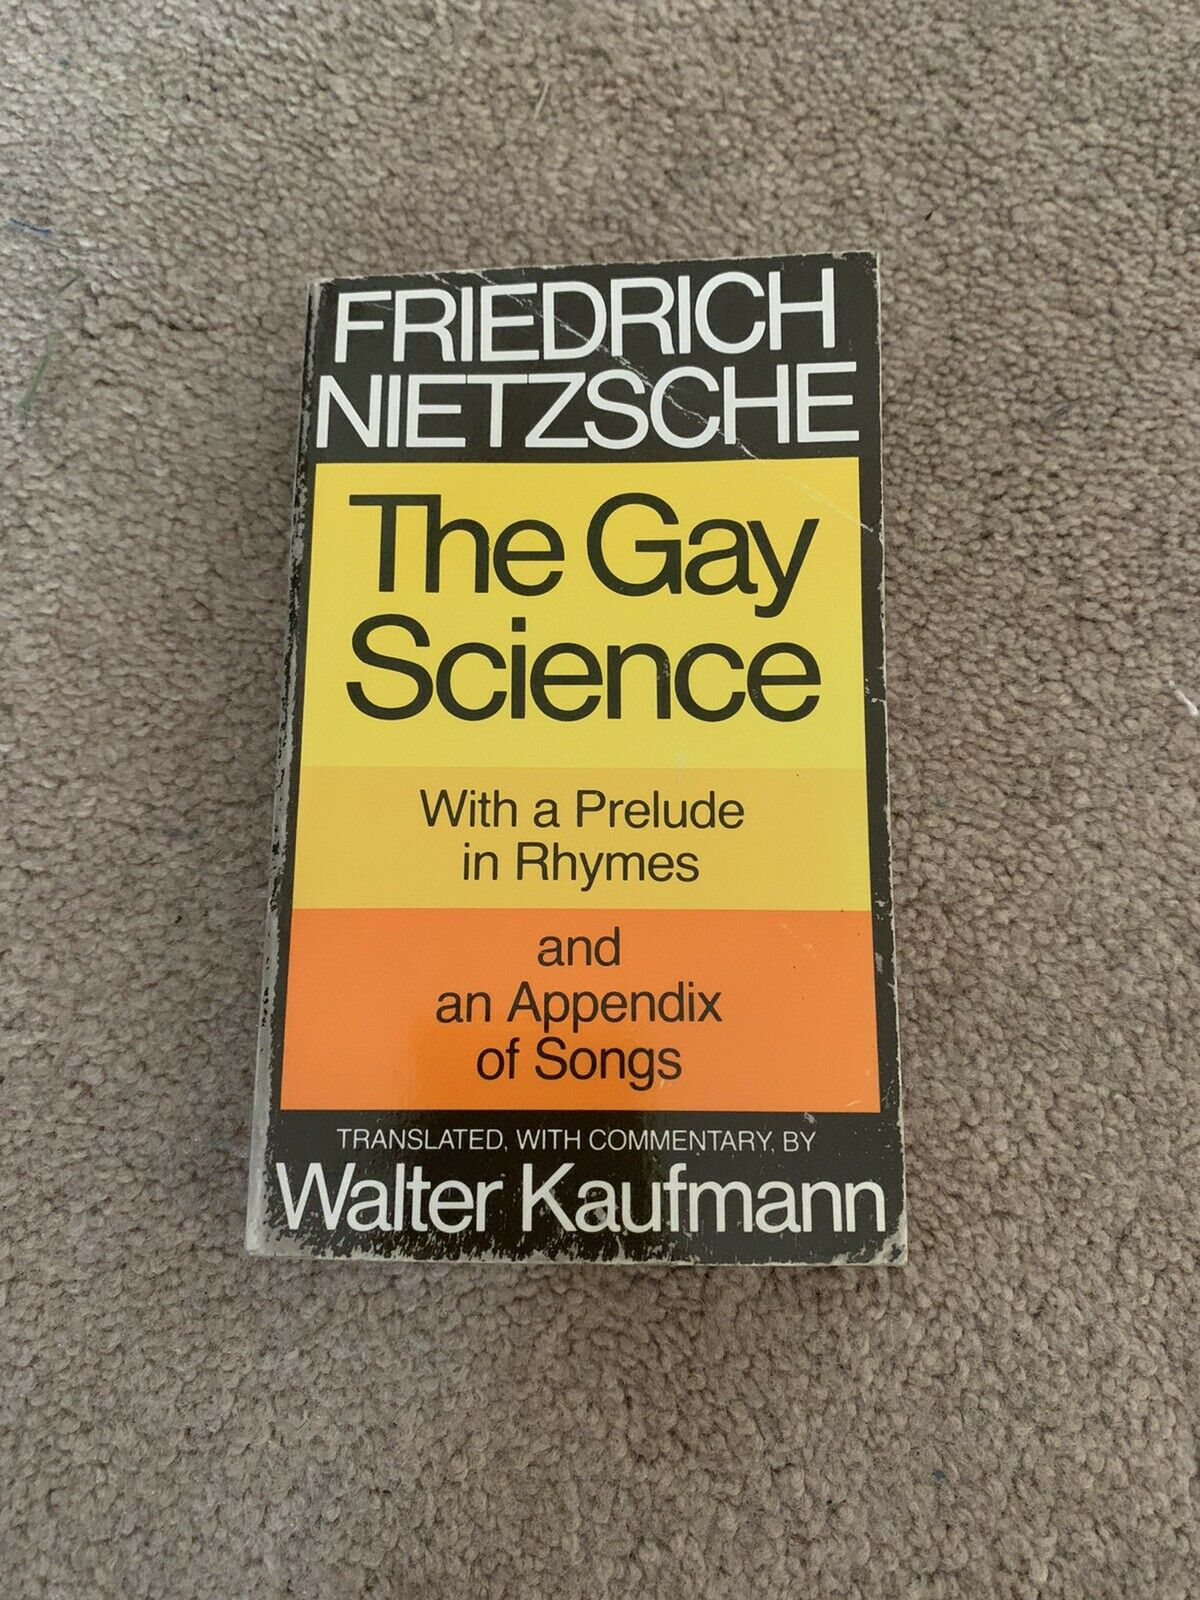 The Gay Science : With a Prelude in Rhymes and an Appendix of Songs by Friedrich 2